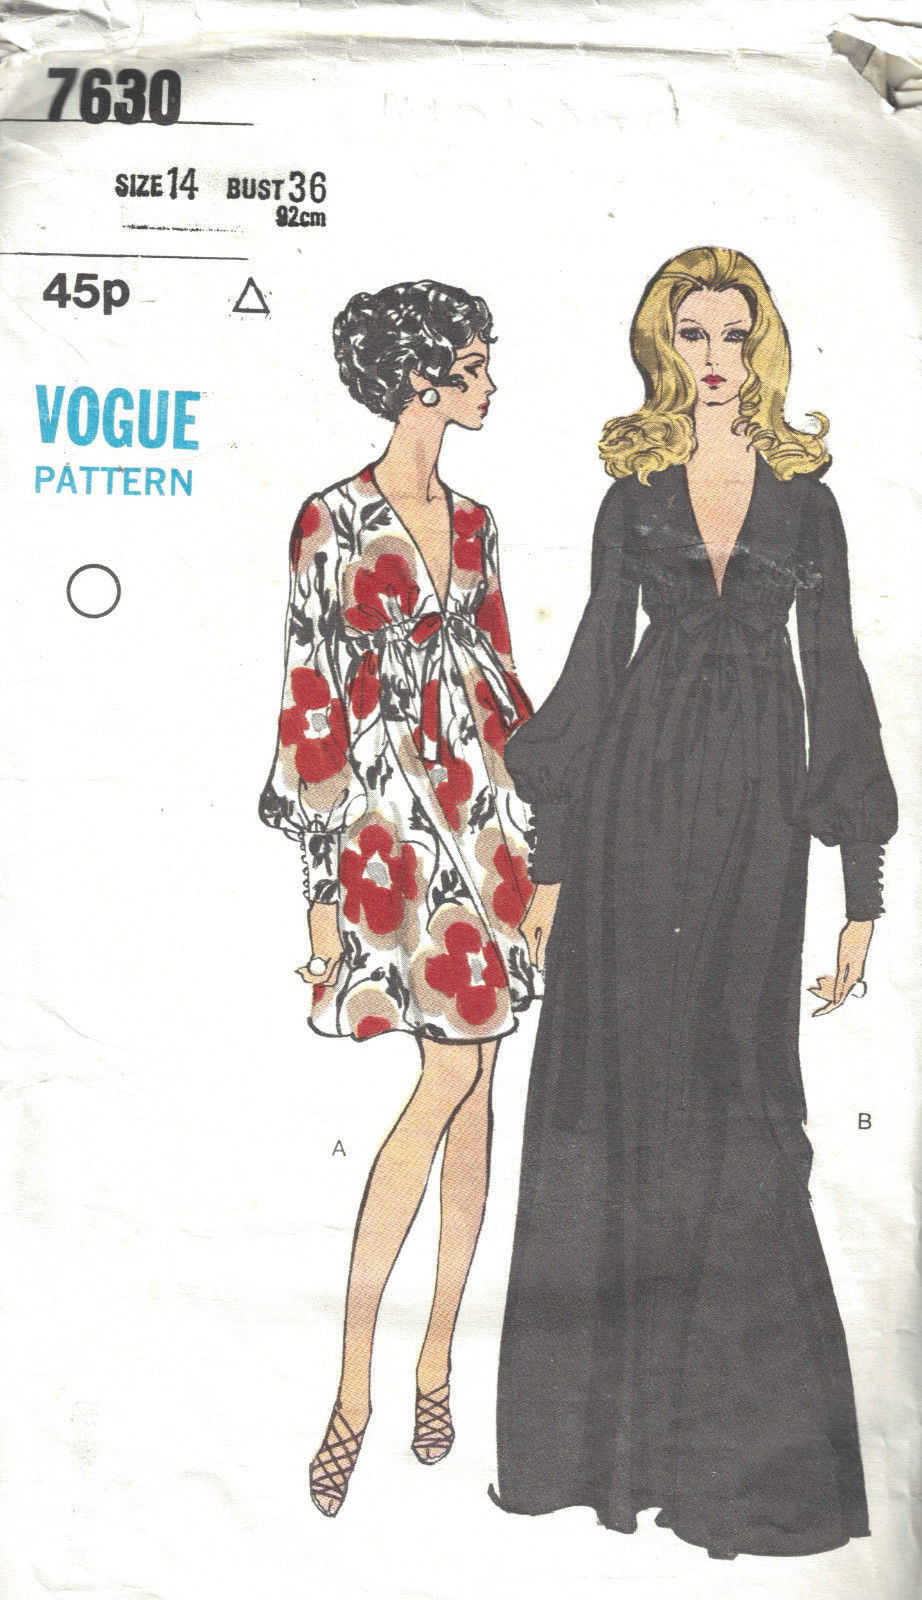 1969 Vintage VOGUE Sewing Pattern DRESS B36 (1781)